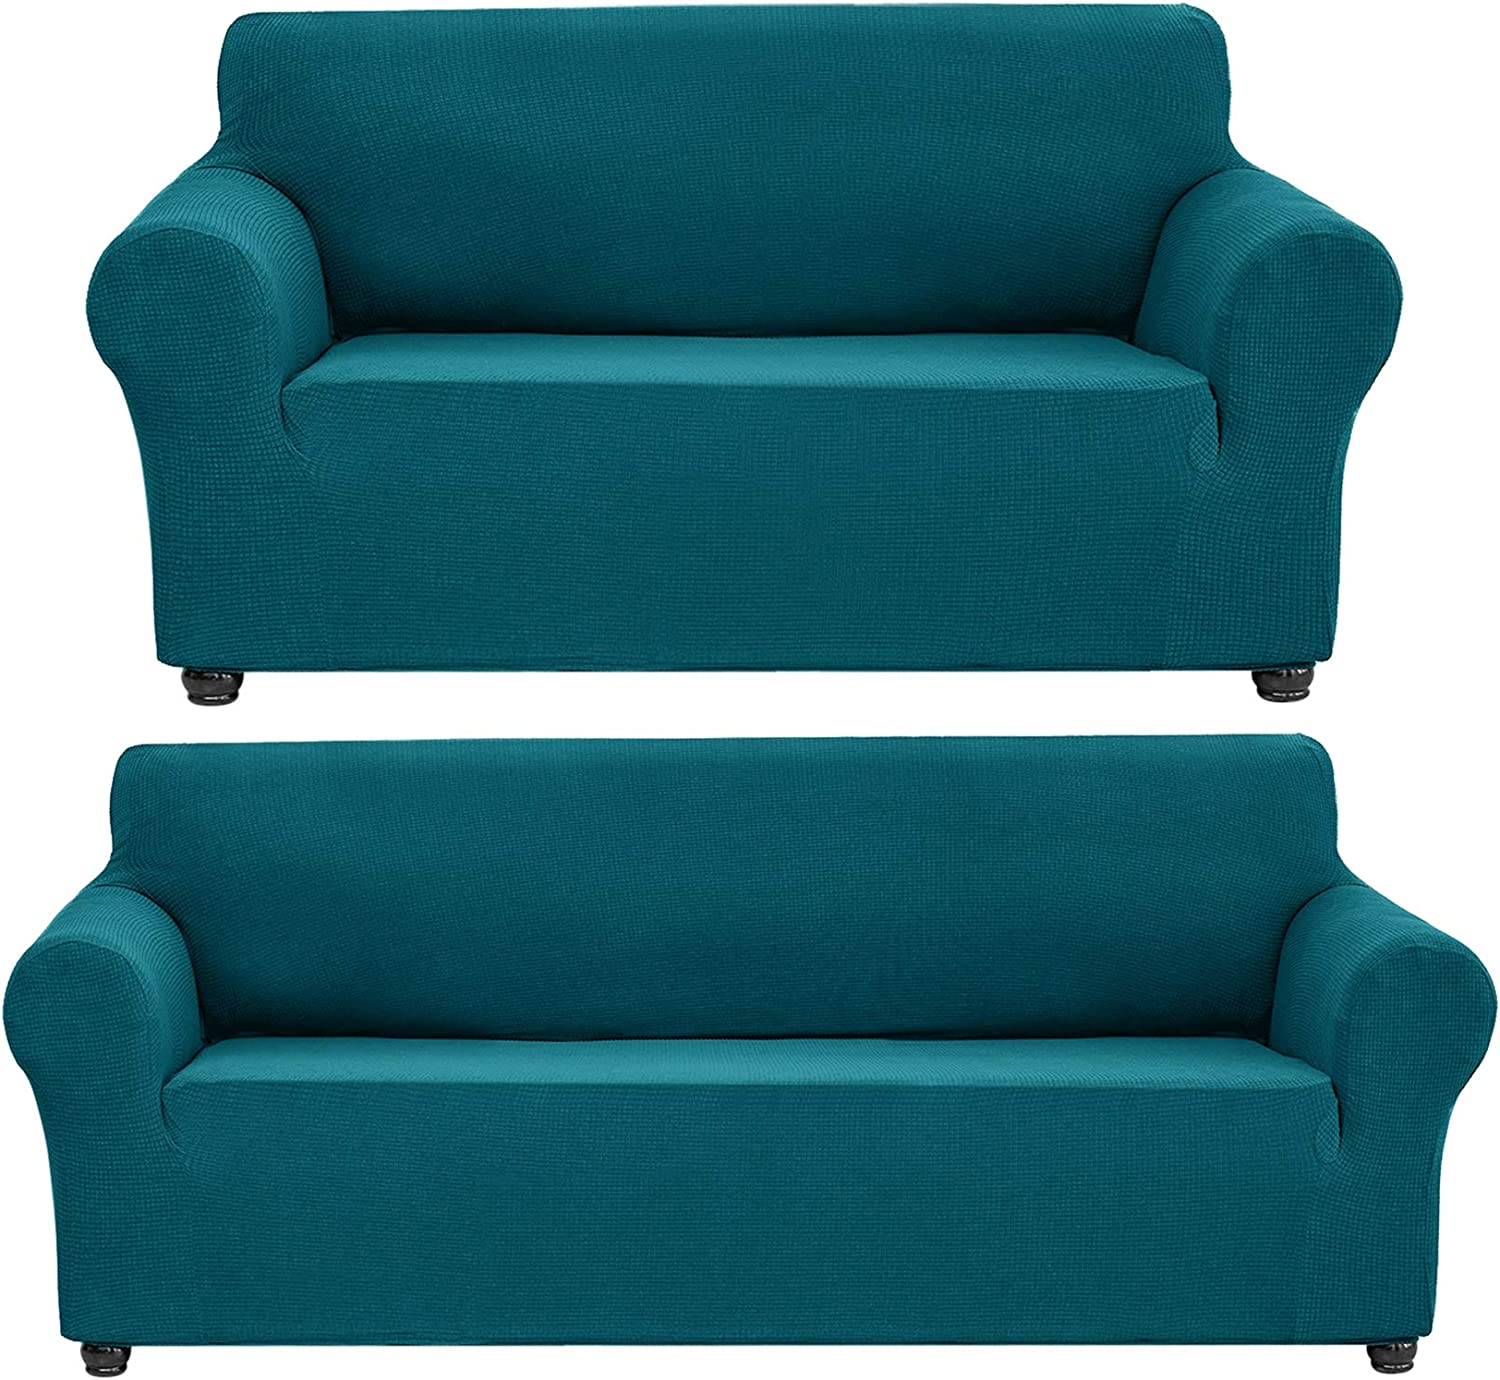 Joccun Loveseat Couch Free shipping / New Cover Bundles Slipcovers Sofa Max 60% OFF Pe Oversized